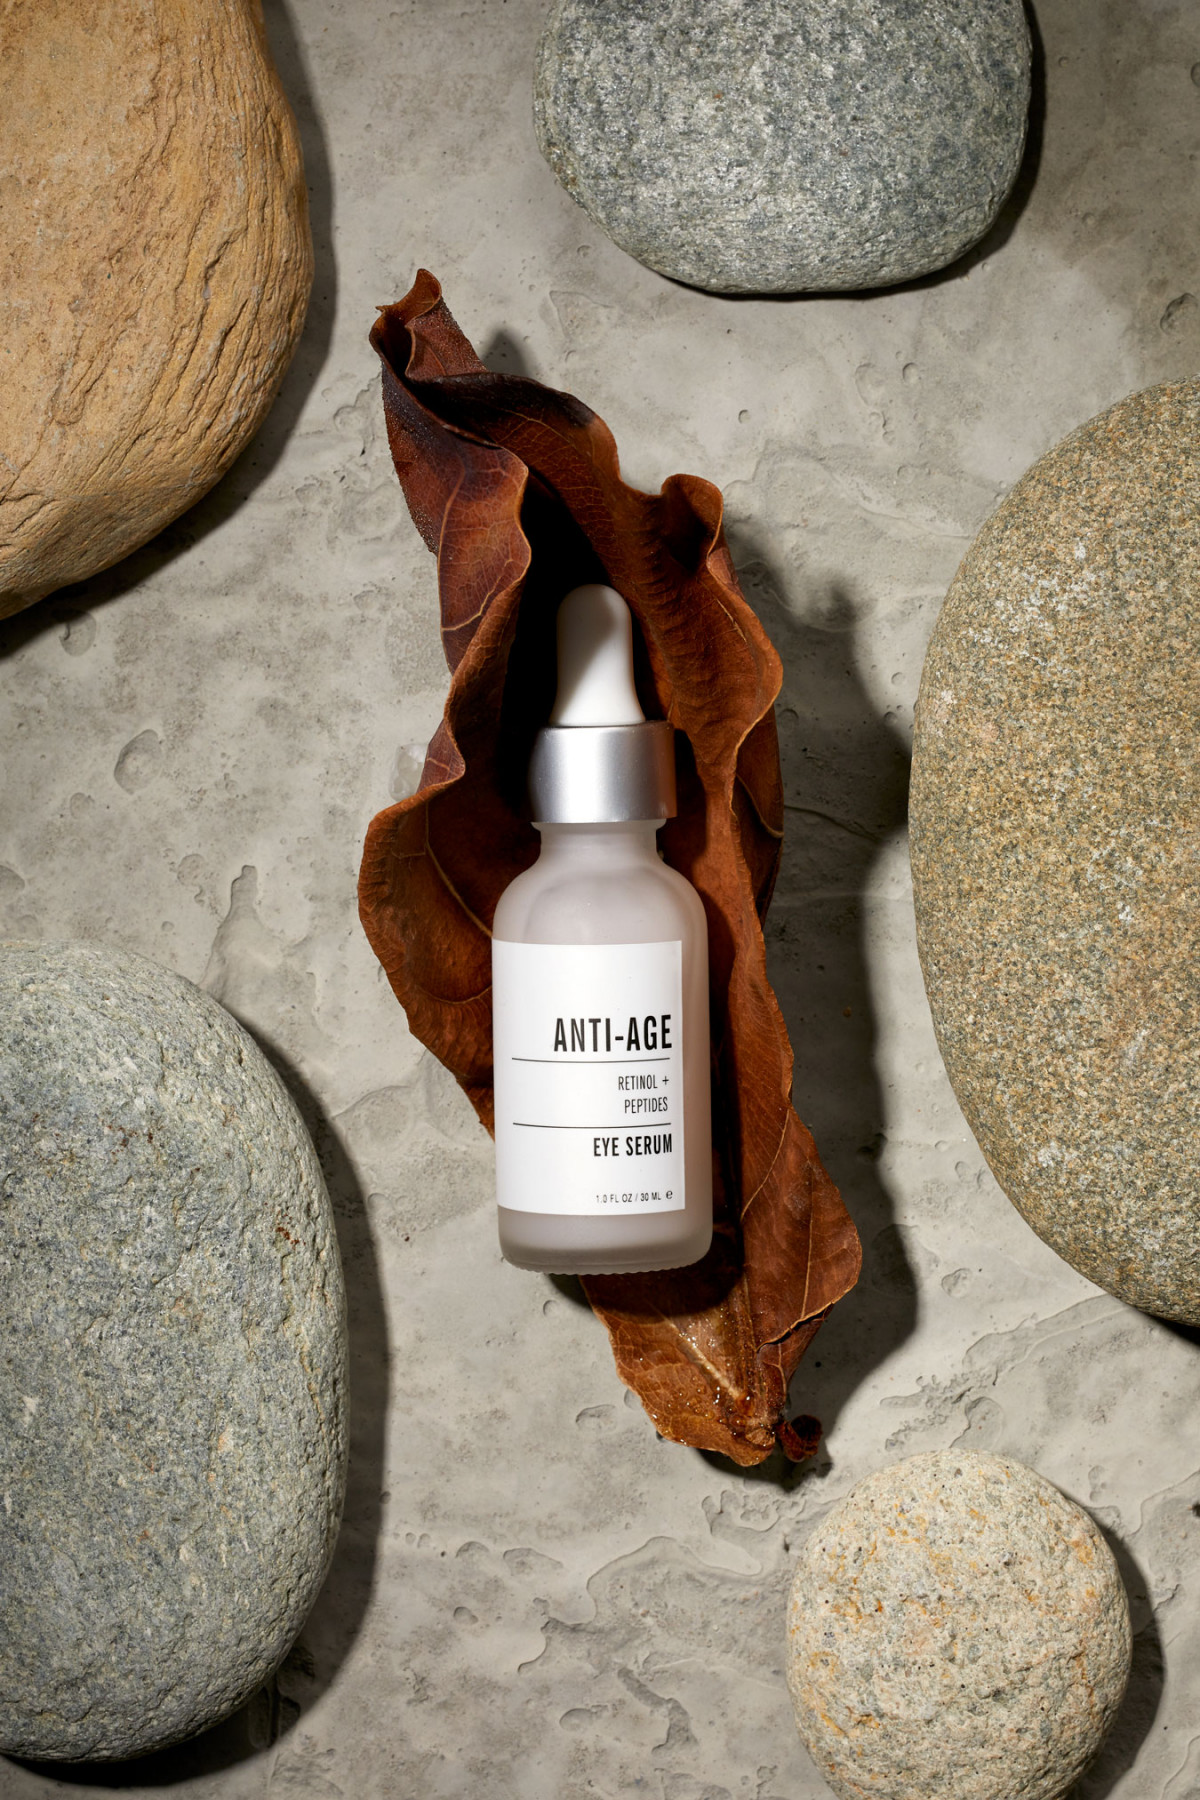 Commercial product photography of anti-aging eye serum amidst natural elements